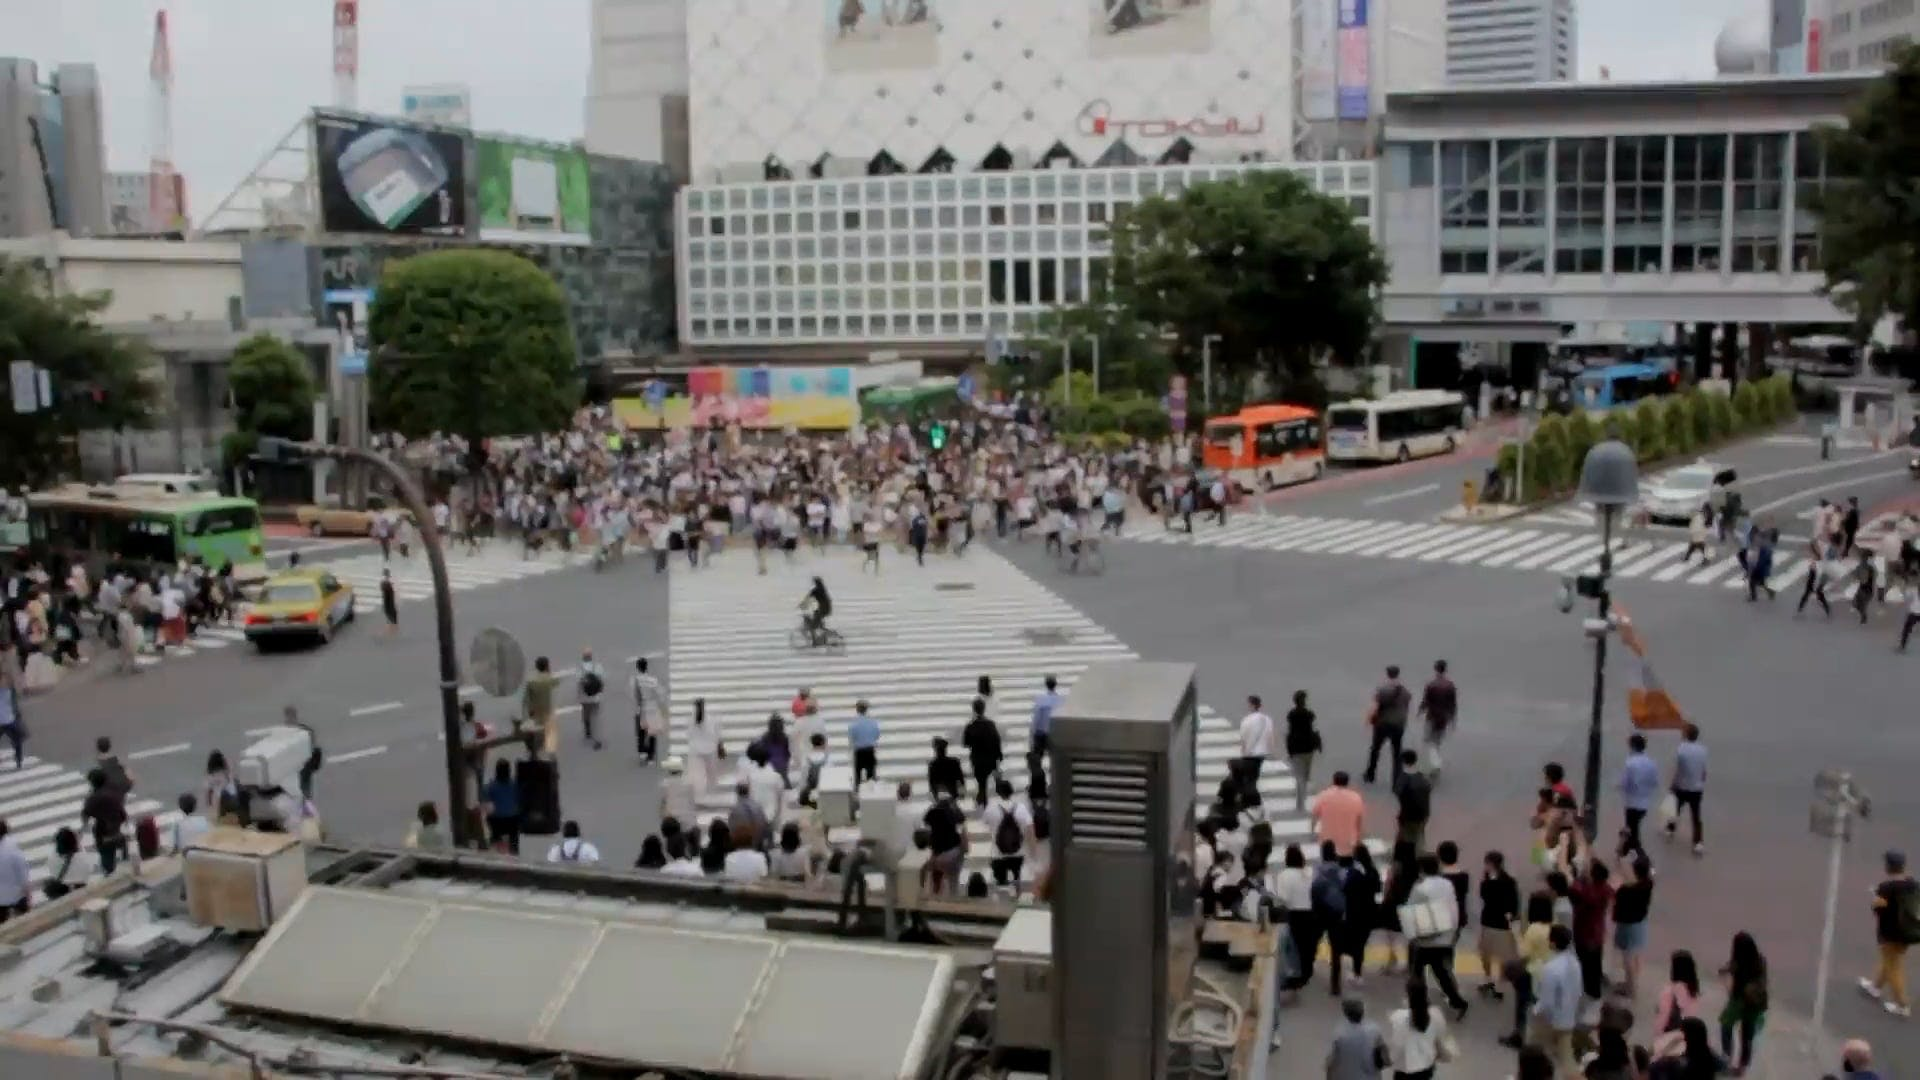 Time Lapse Video Of People Crossing The Street